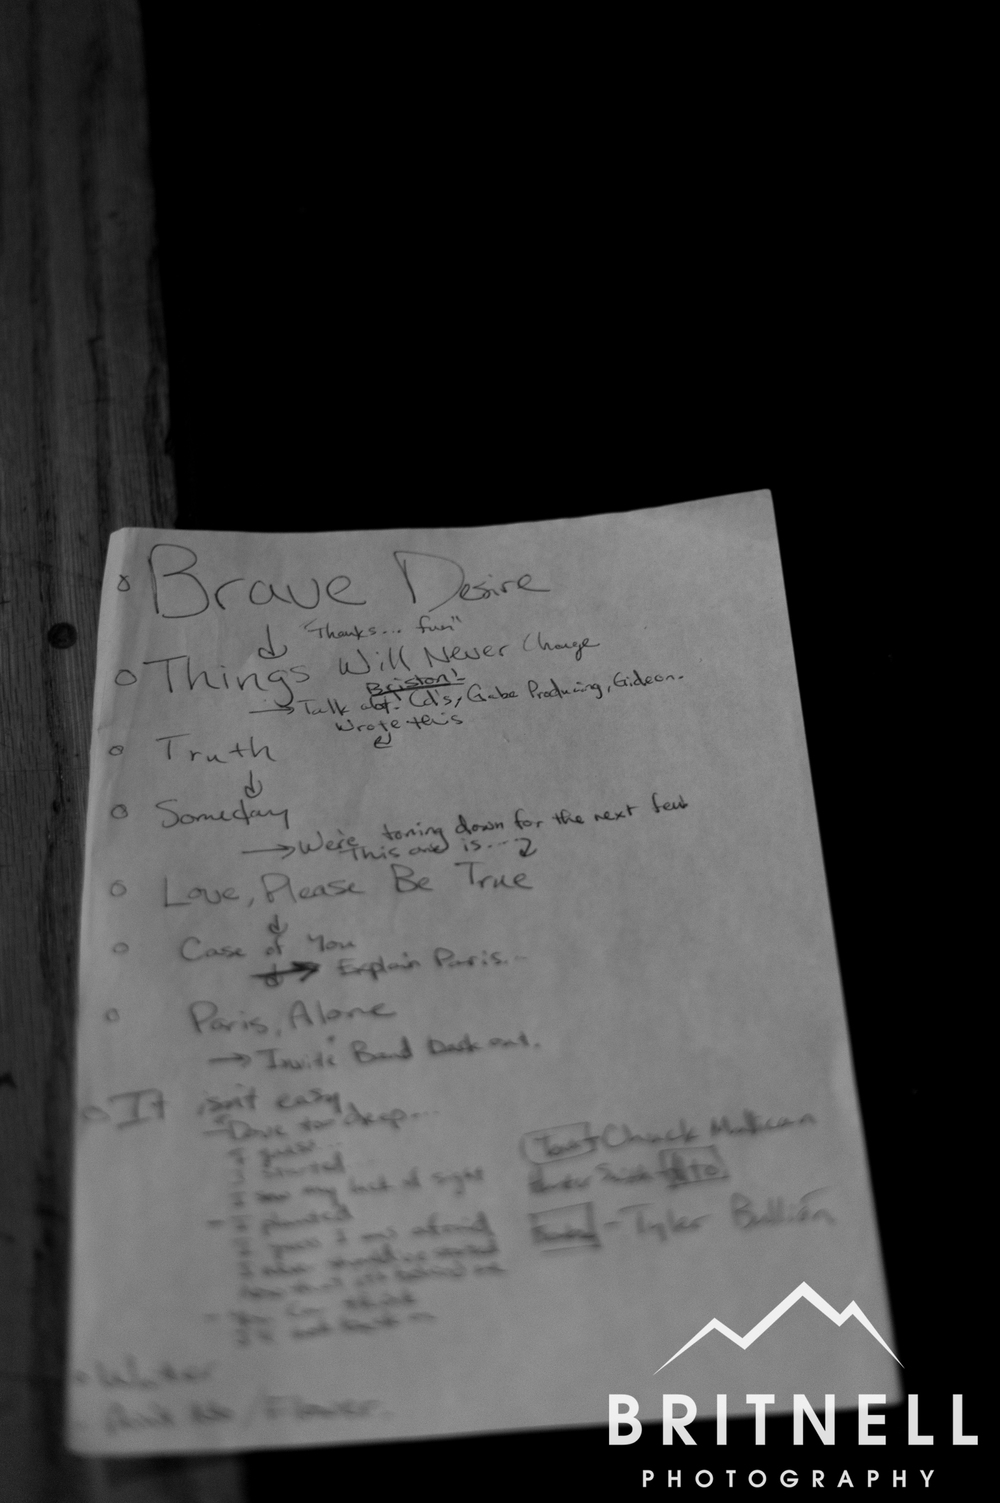 Set list for the night.